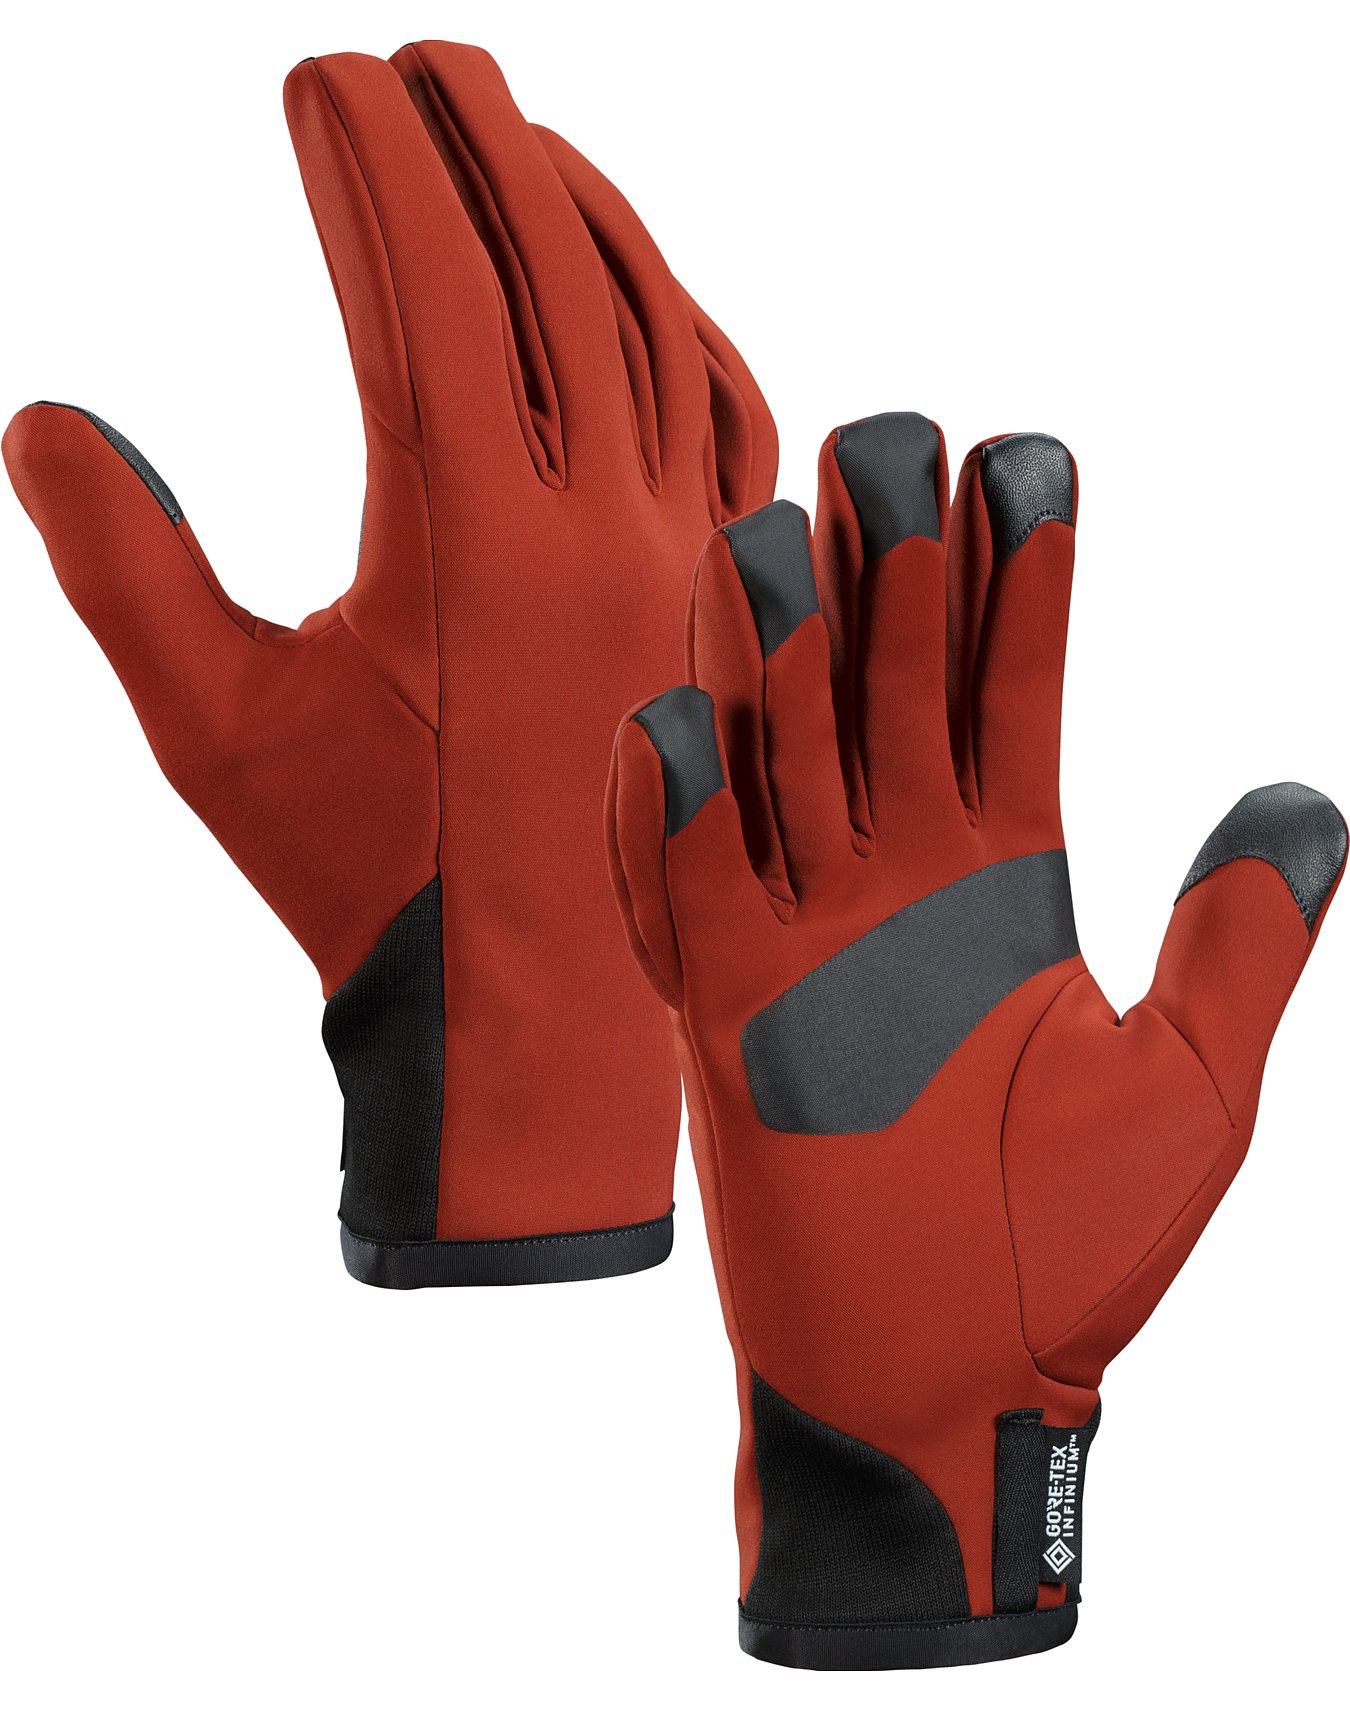 Mens Women Unisex Winter Gloves Phone Using Screen for Driving Cycling Running V